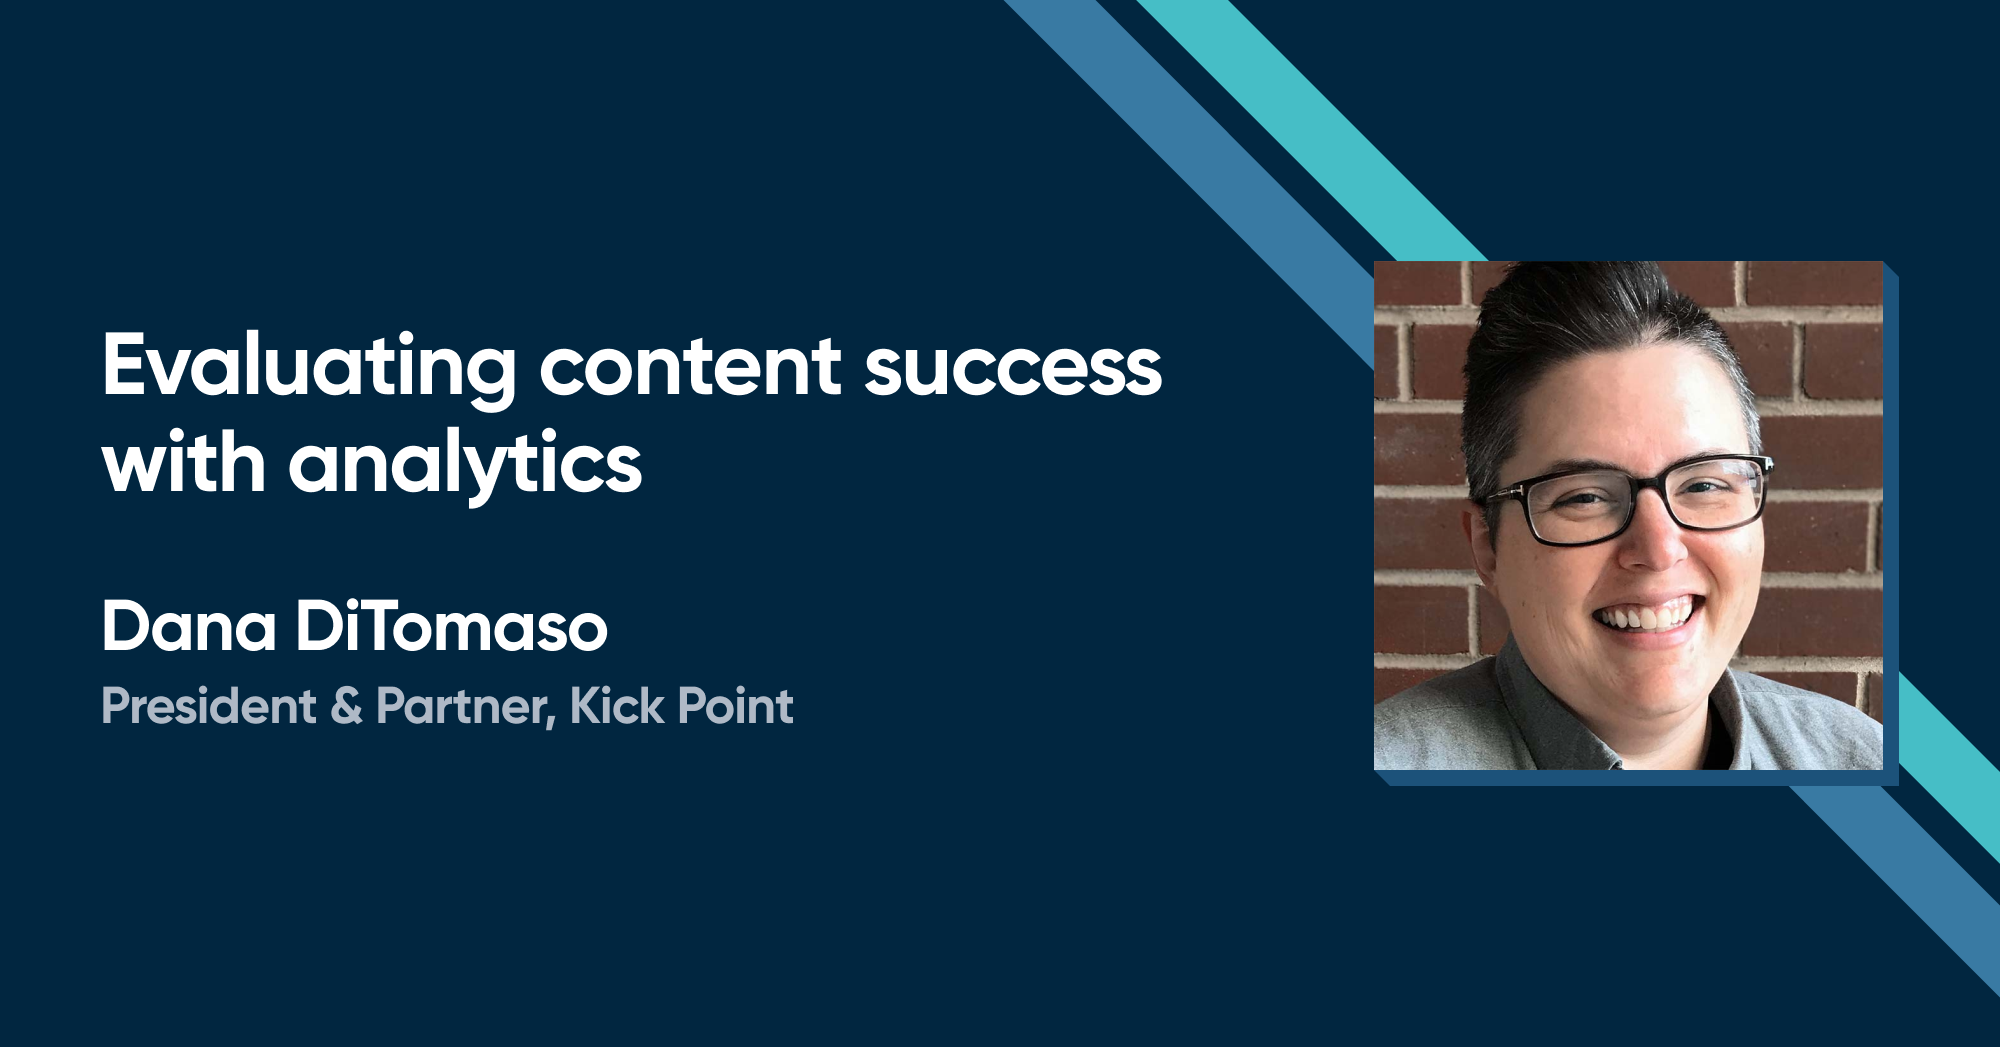 Dana DiTomaso - Evaluating content success with analytics